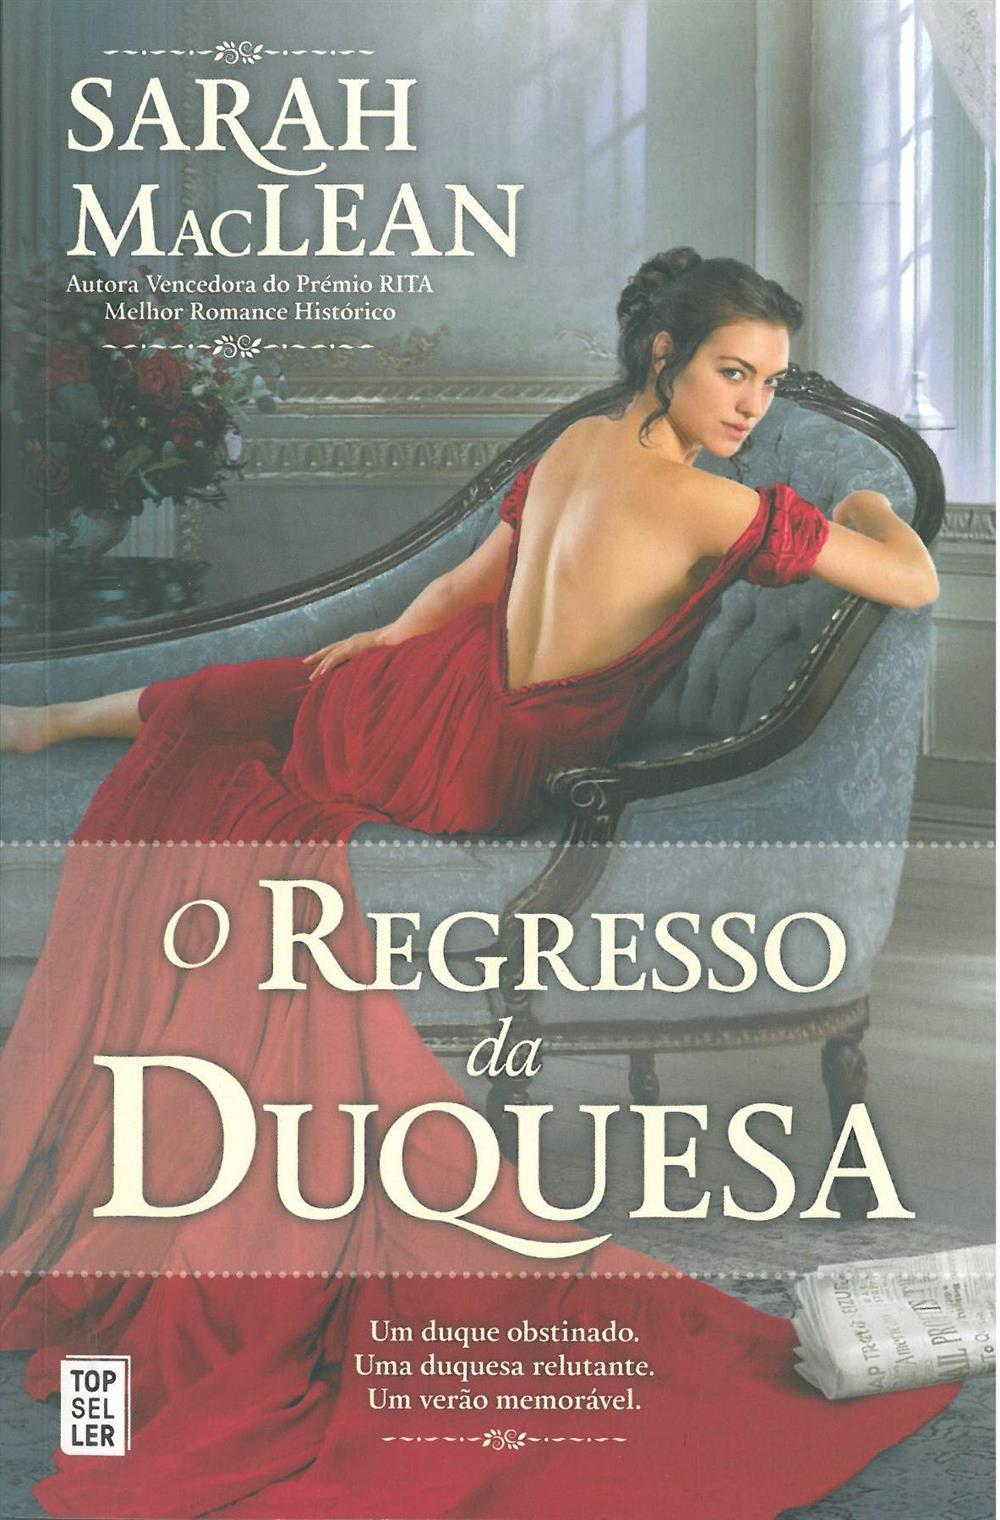 O regresso da duquesa.jpg